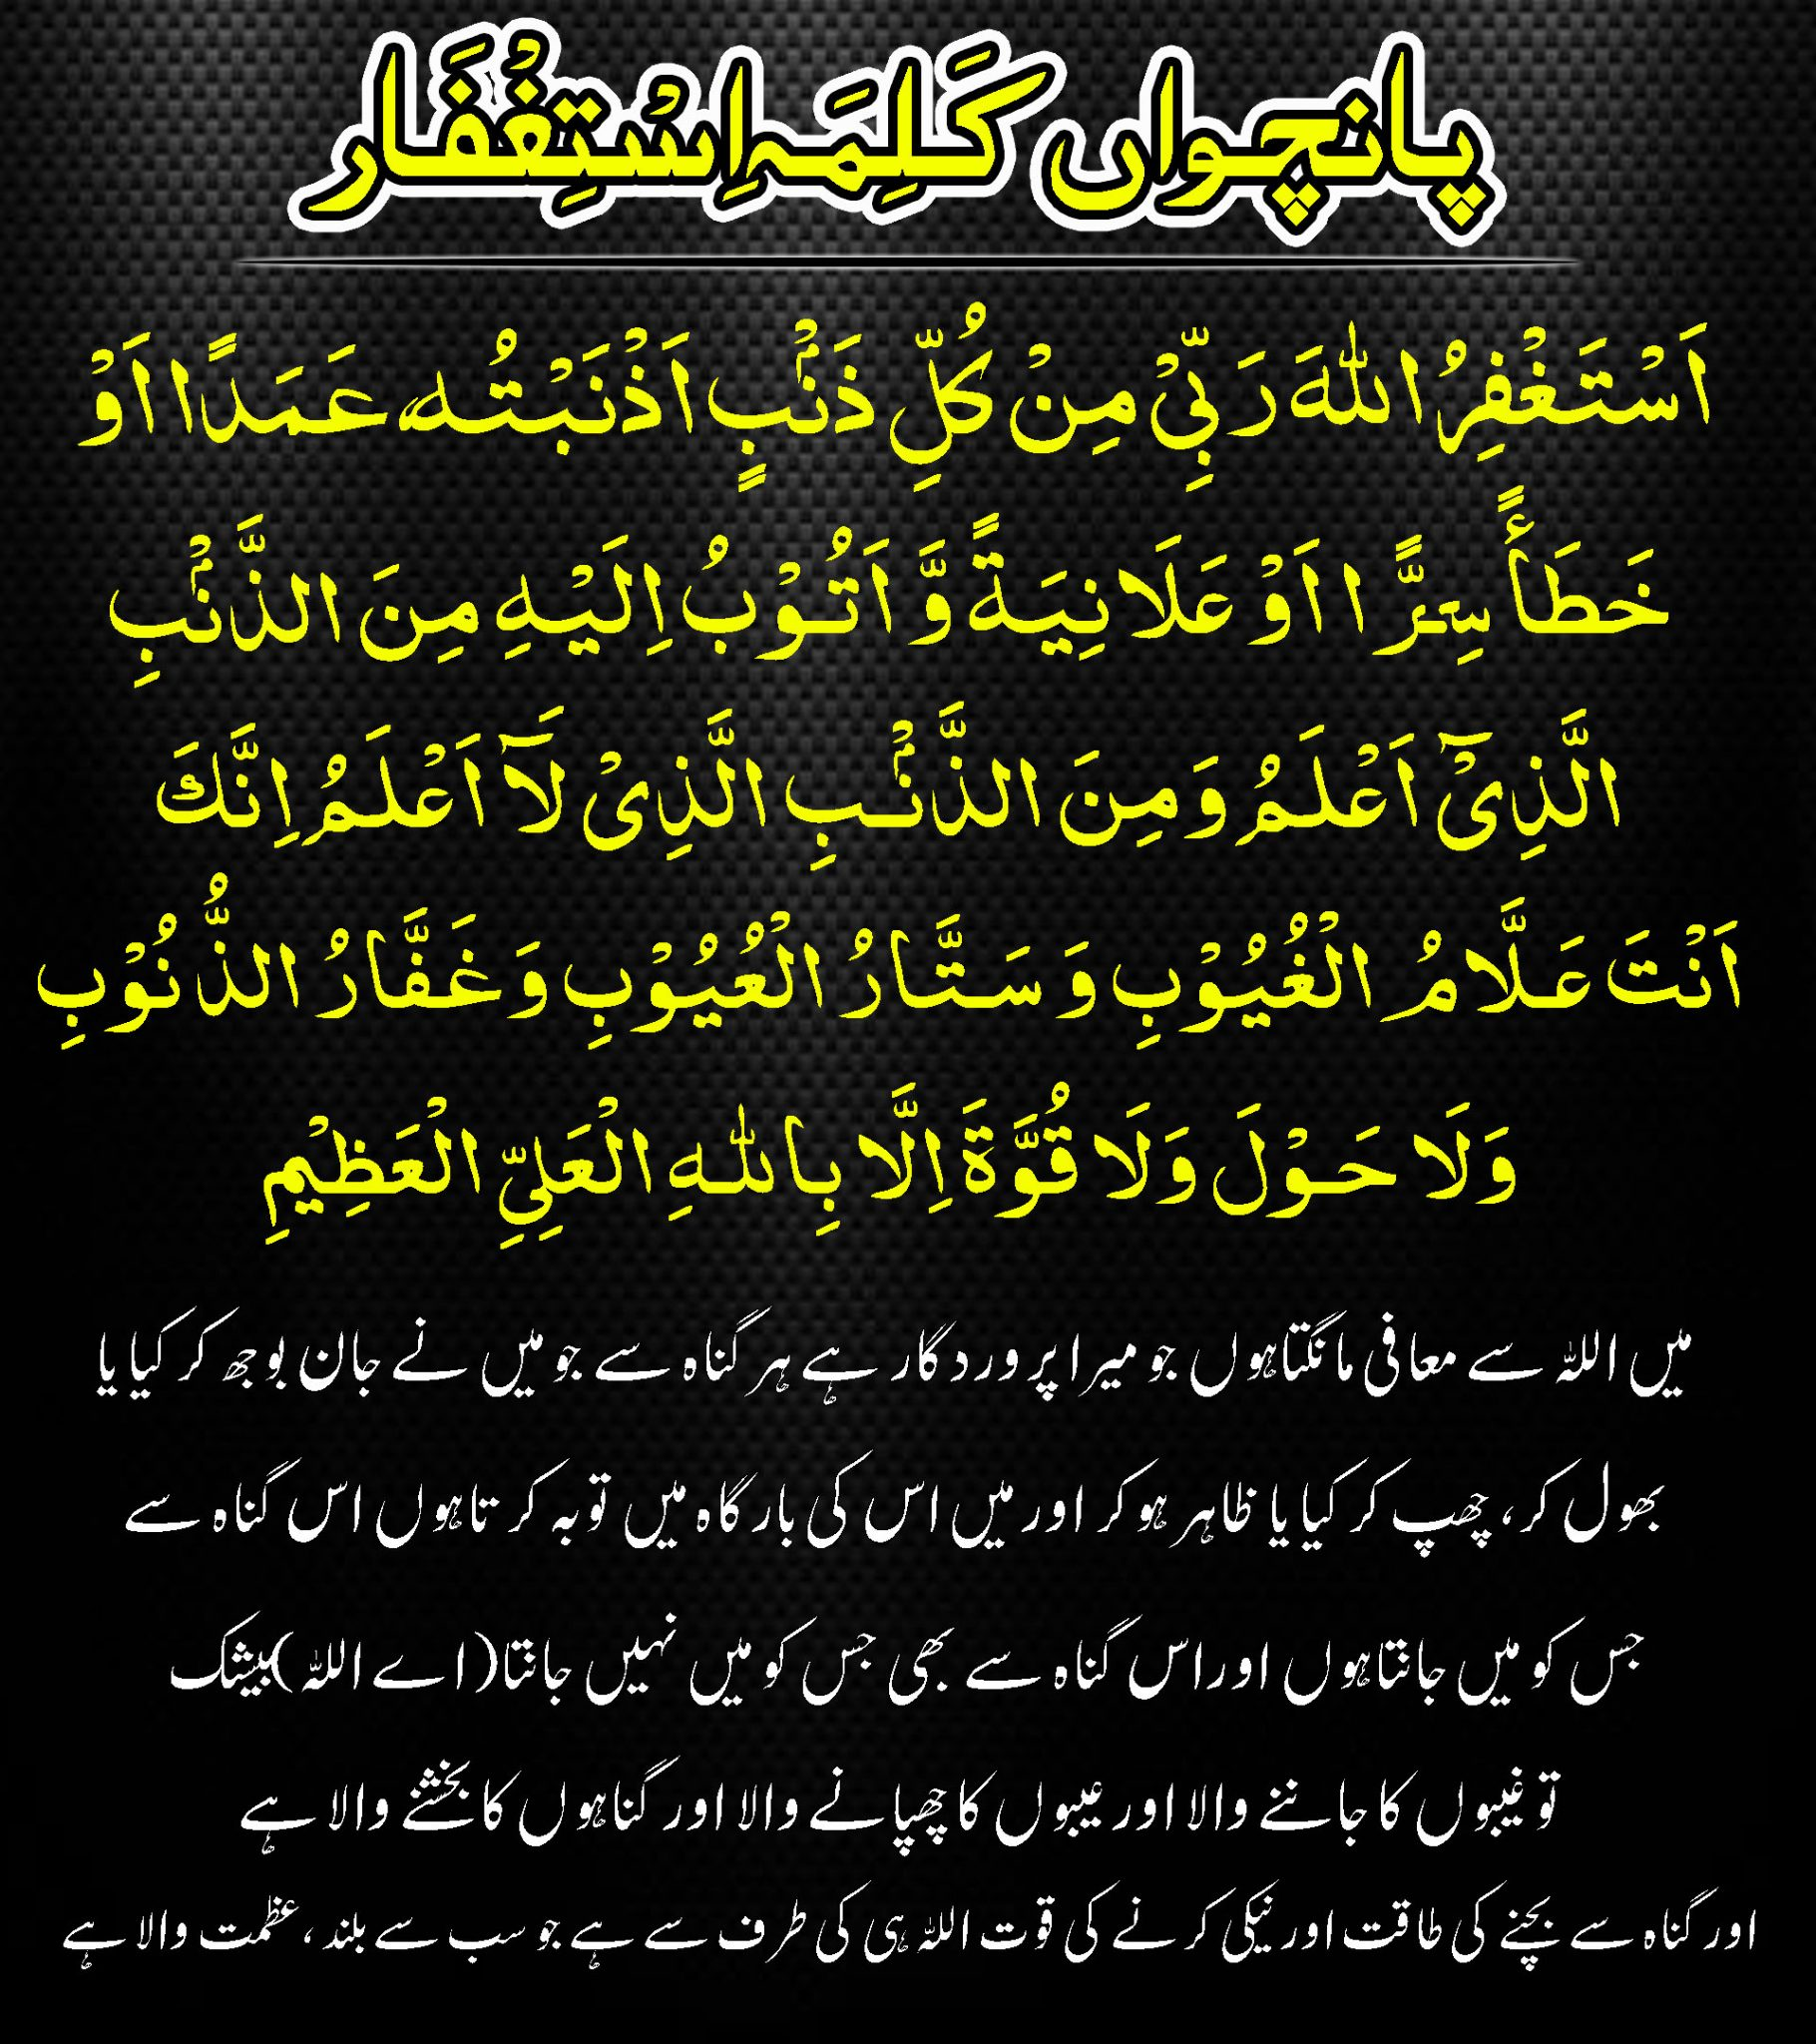 Photo of 5 Kalima Astaghfar With Urdu Translation